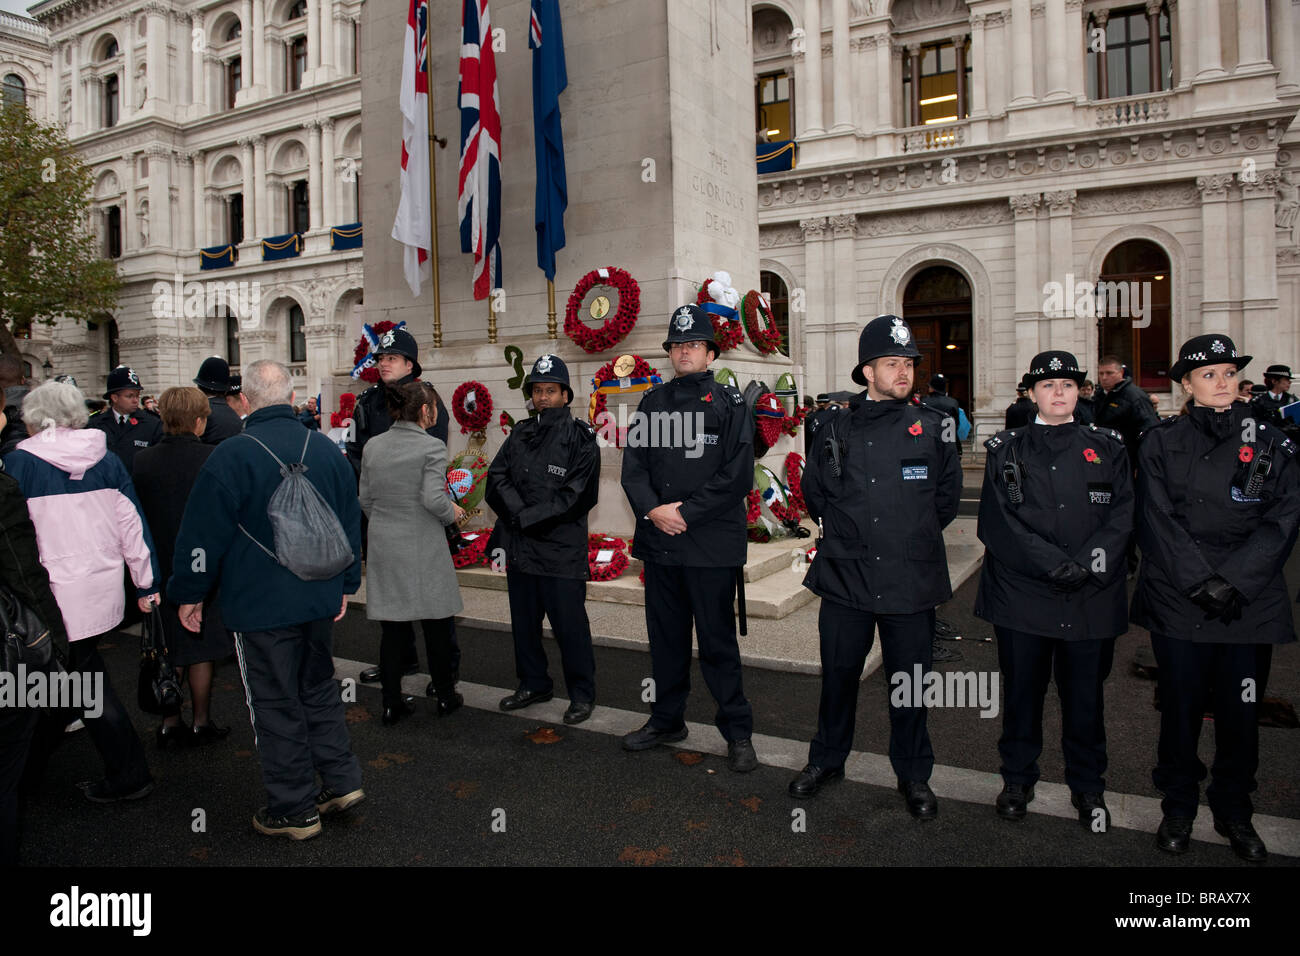 A line of male and female Metropolitan Police officers guard The Cenotaph in Whitehall, London, after the remembrance - Stock Image